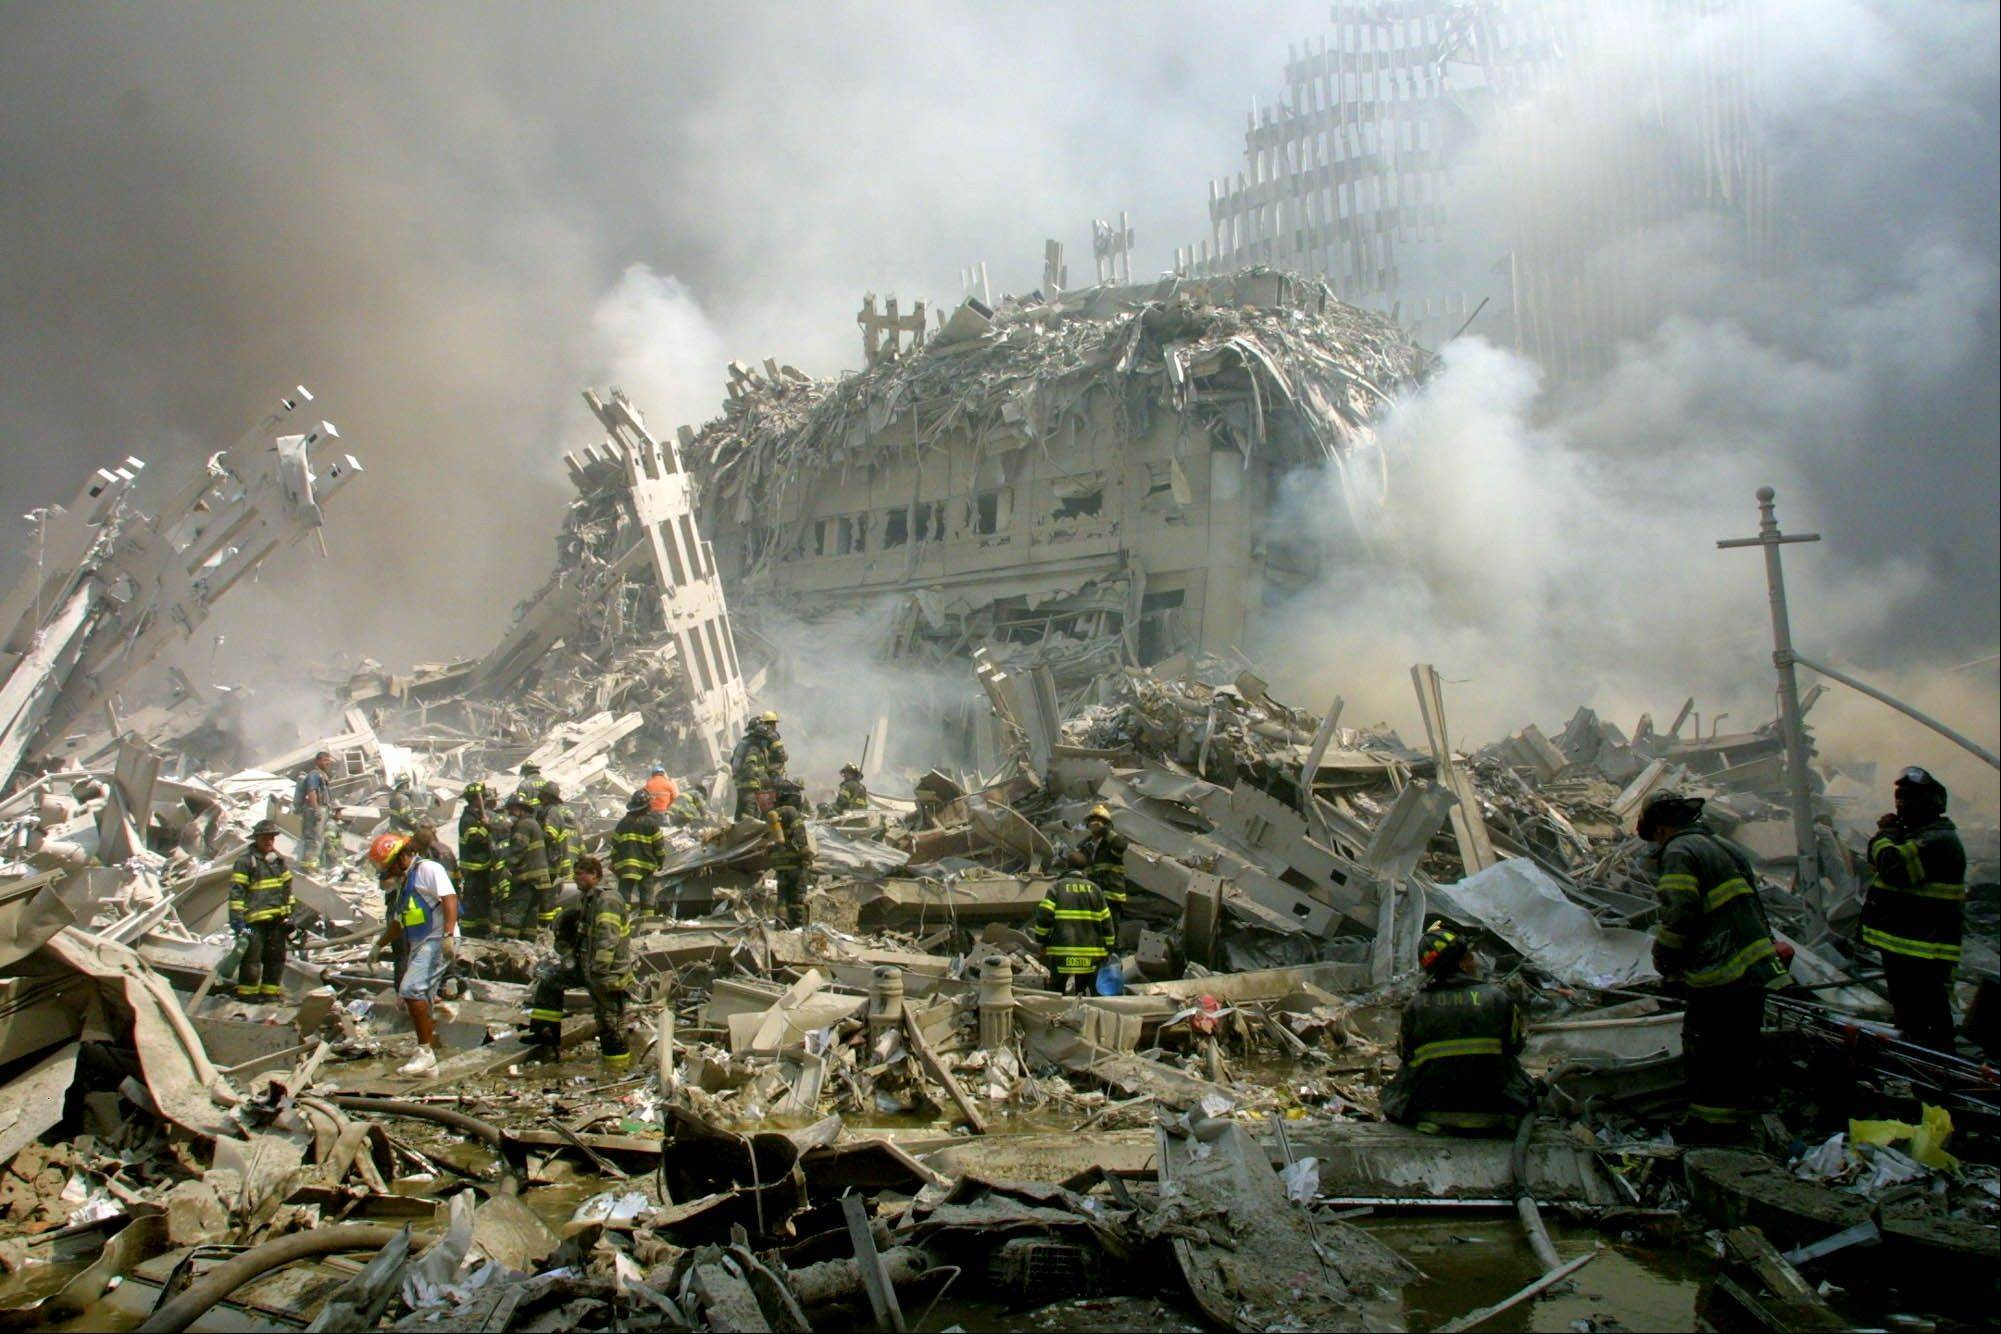 Firefighters walk through the rubble of the collapsed World Trade Center buildings on Sept. 11, 2001.